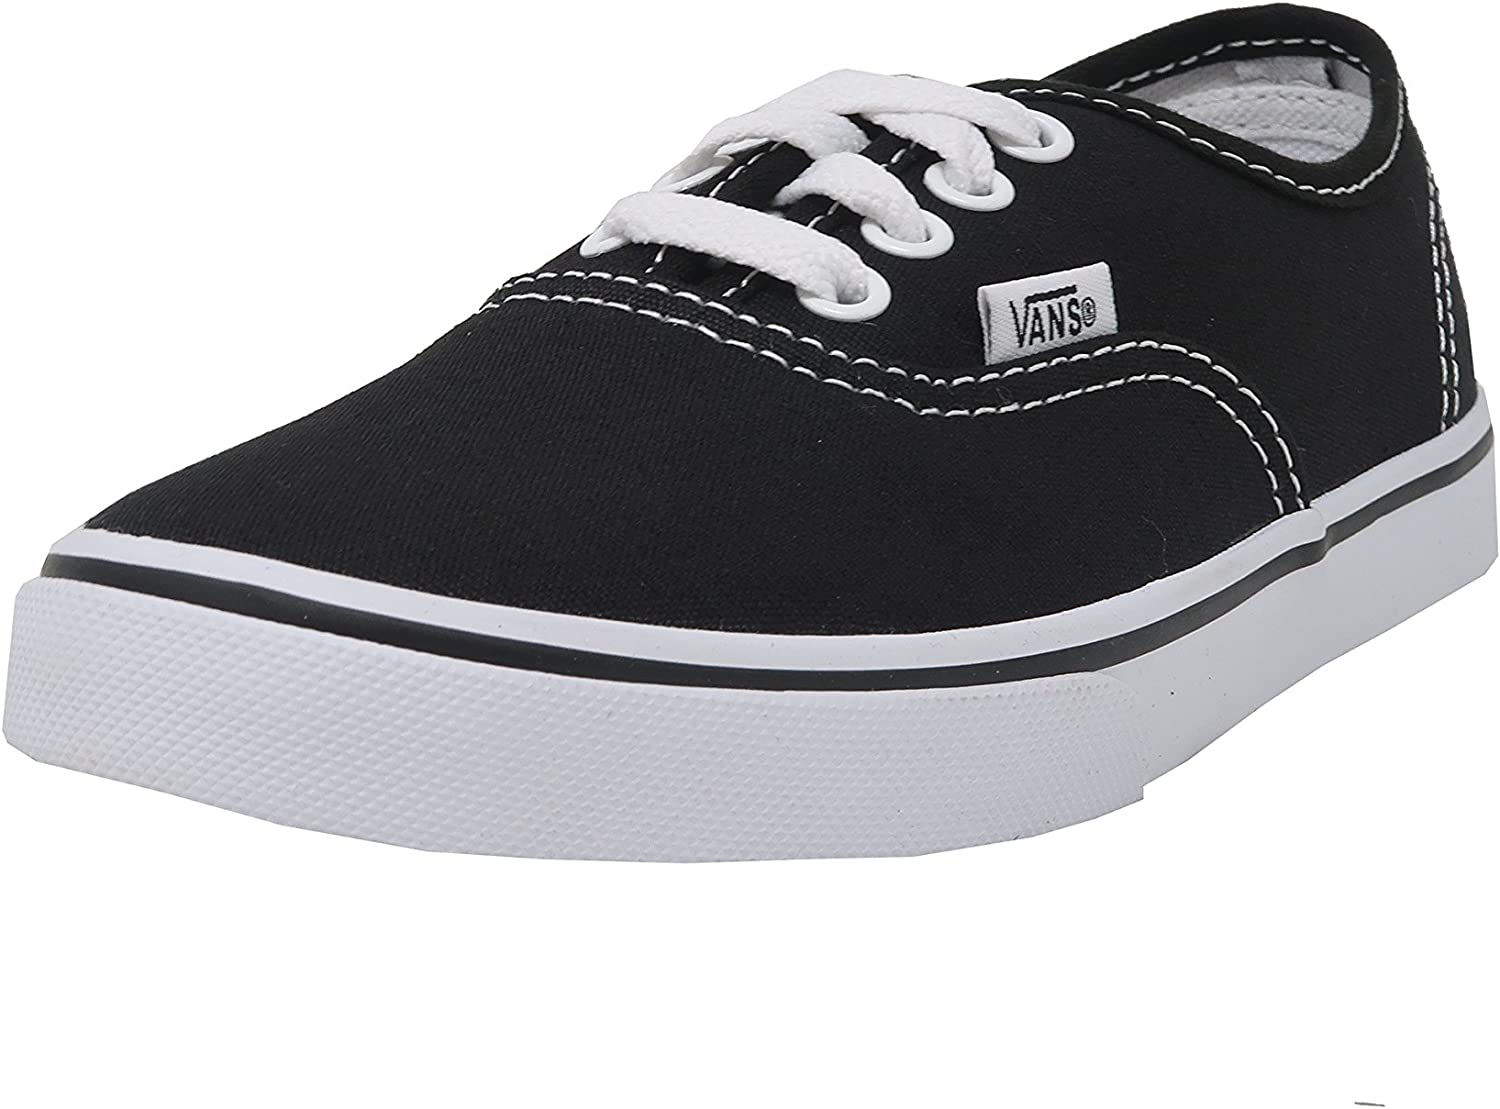 vans for youth boys